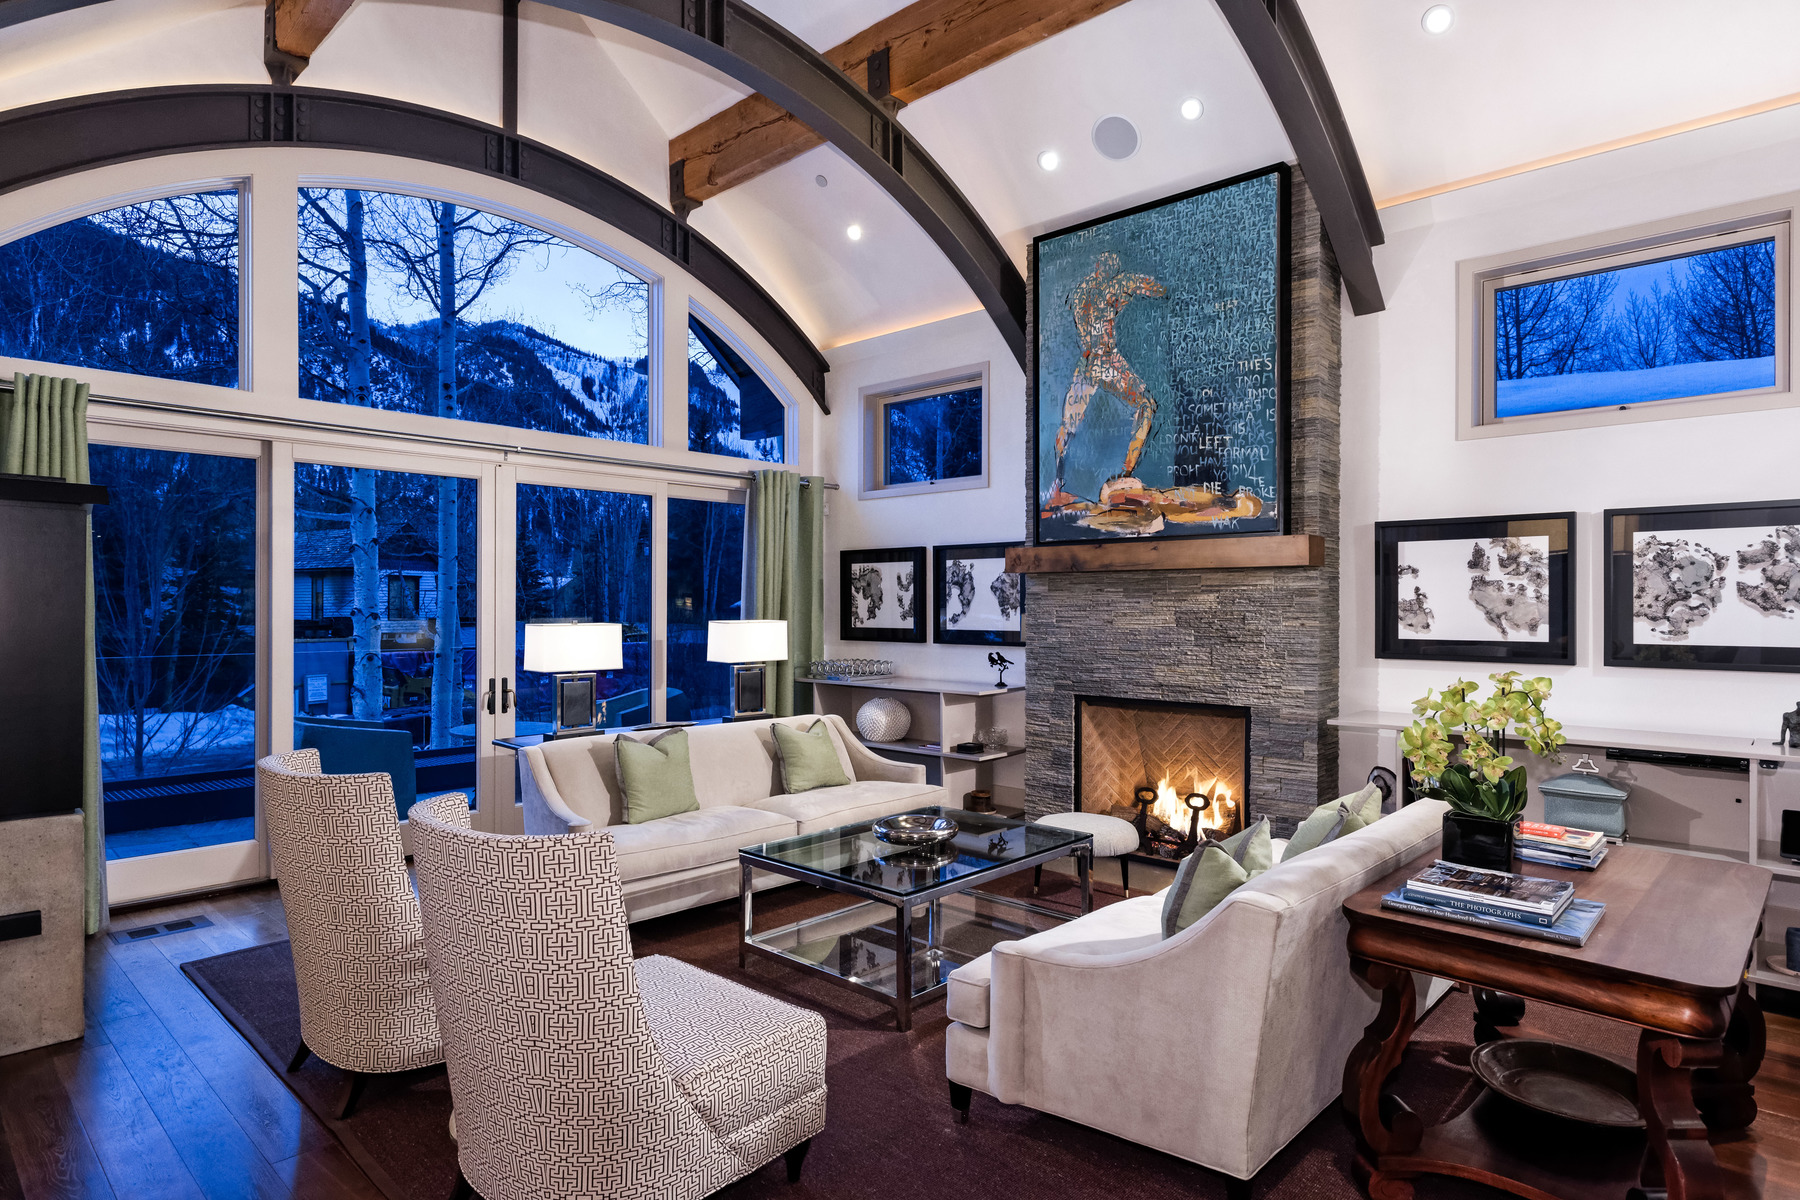 Single Family Home for Sale at Aspen Perfection 63 Smuggler Grove Road Smuggler, Aspen, Colorado, 81611 United States